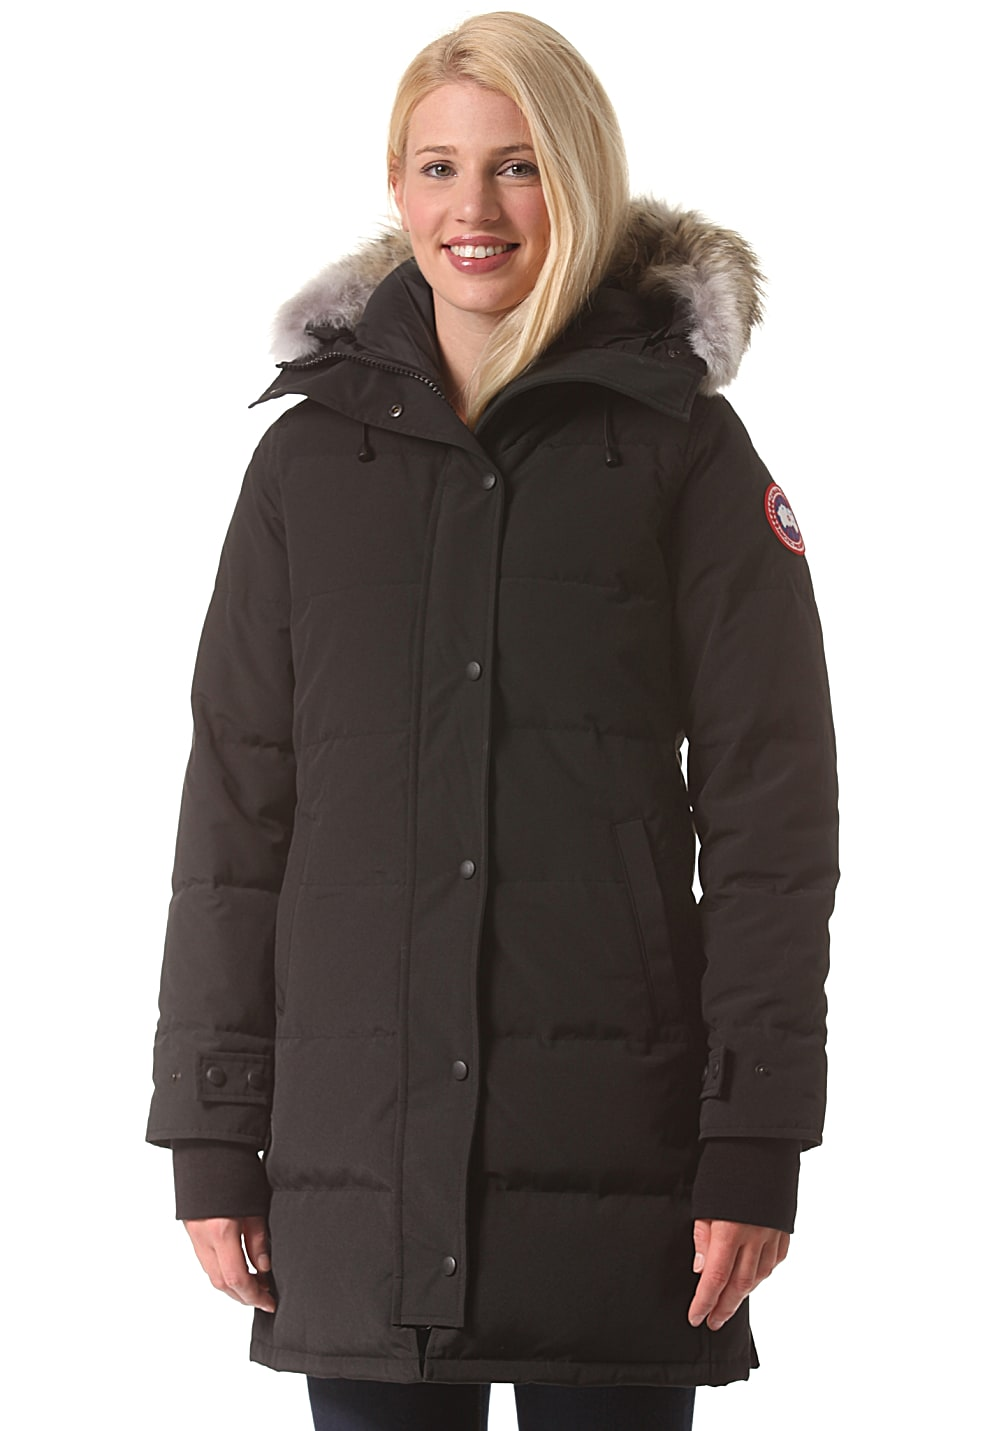 canada goose shelburne funktionsjacke f r damen schwarz planet sports. Black Bedroom Furniture Sets. Home Design Ideas